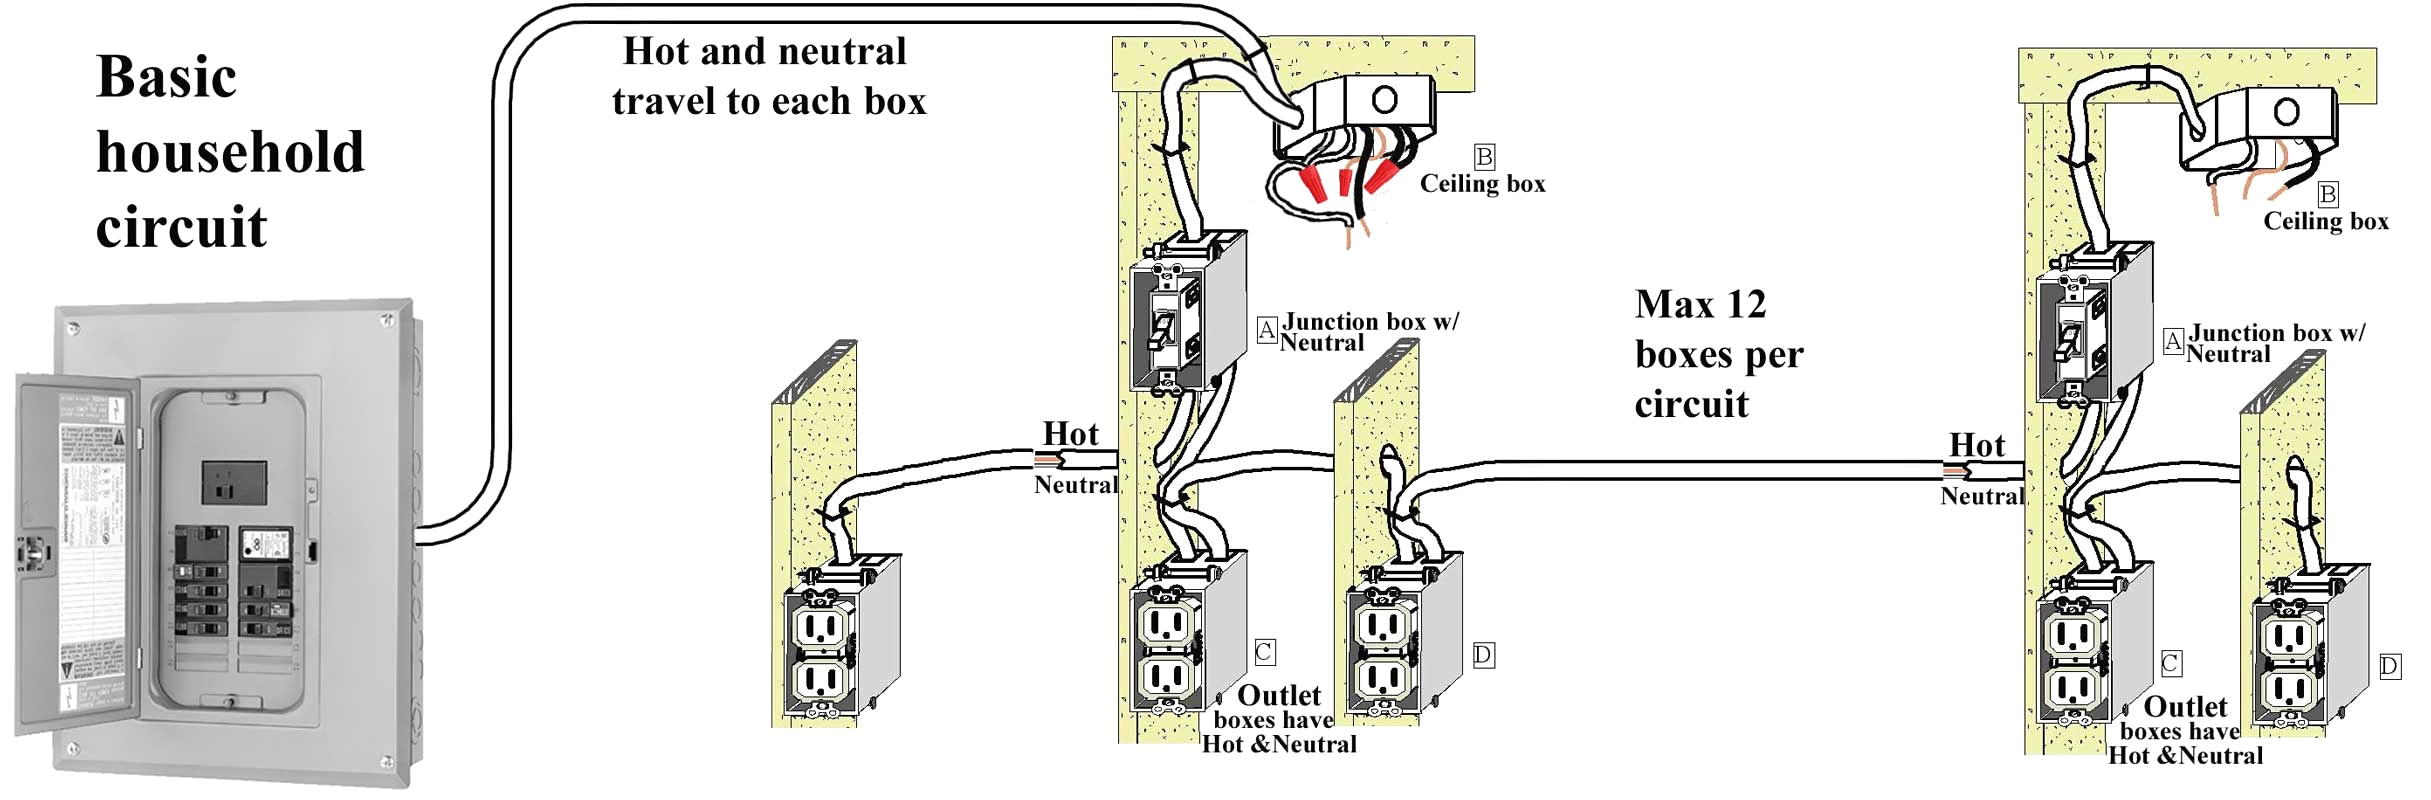 Basic Home Wiring Diagrams Pdf In Electrical Circuit Magnificent - Electrical Wiring Diagram Pdf